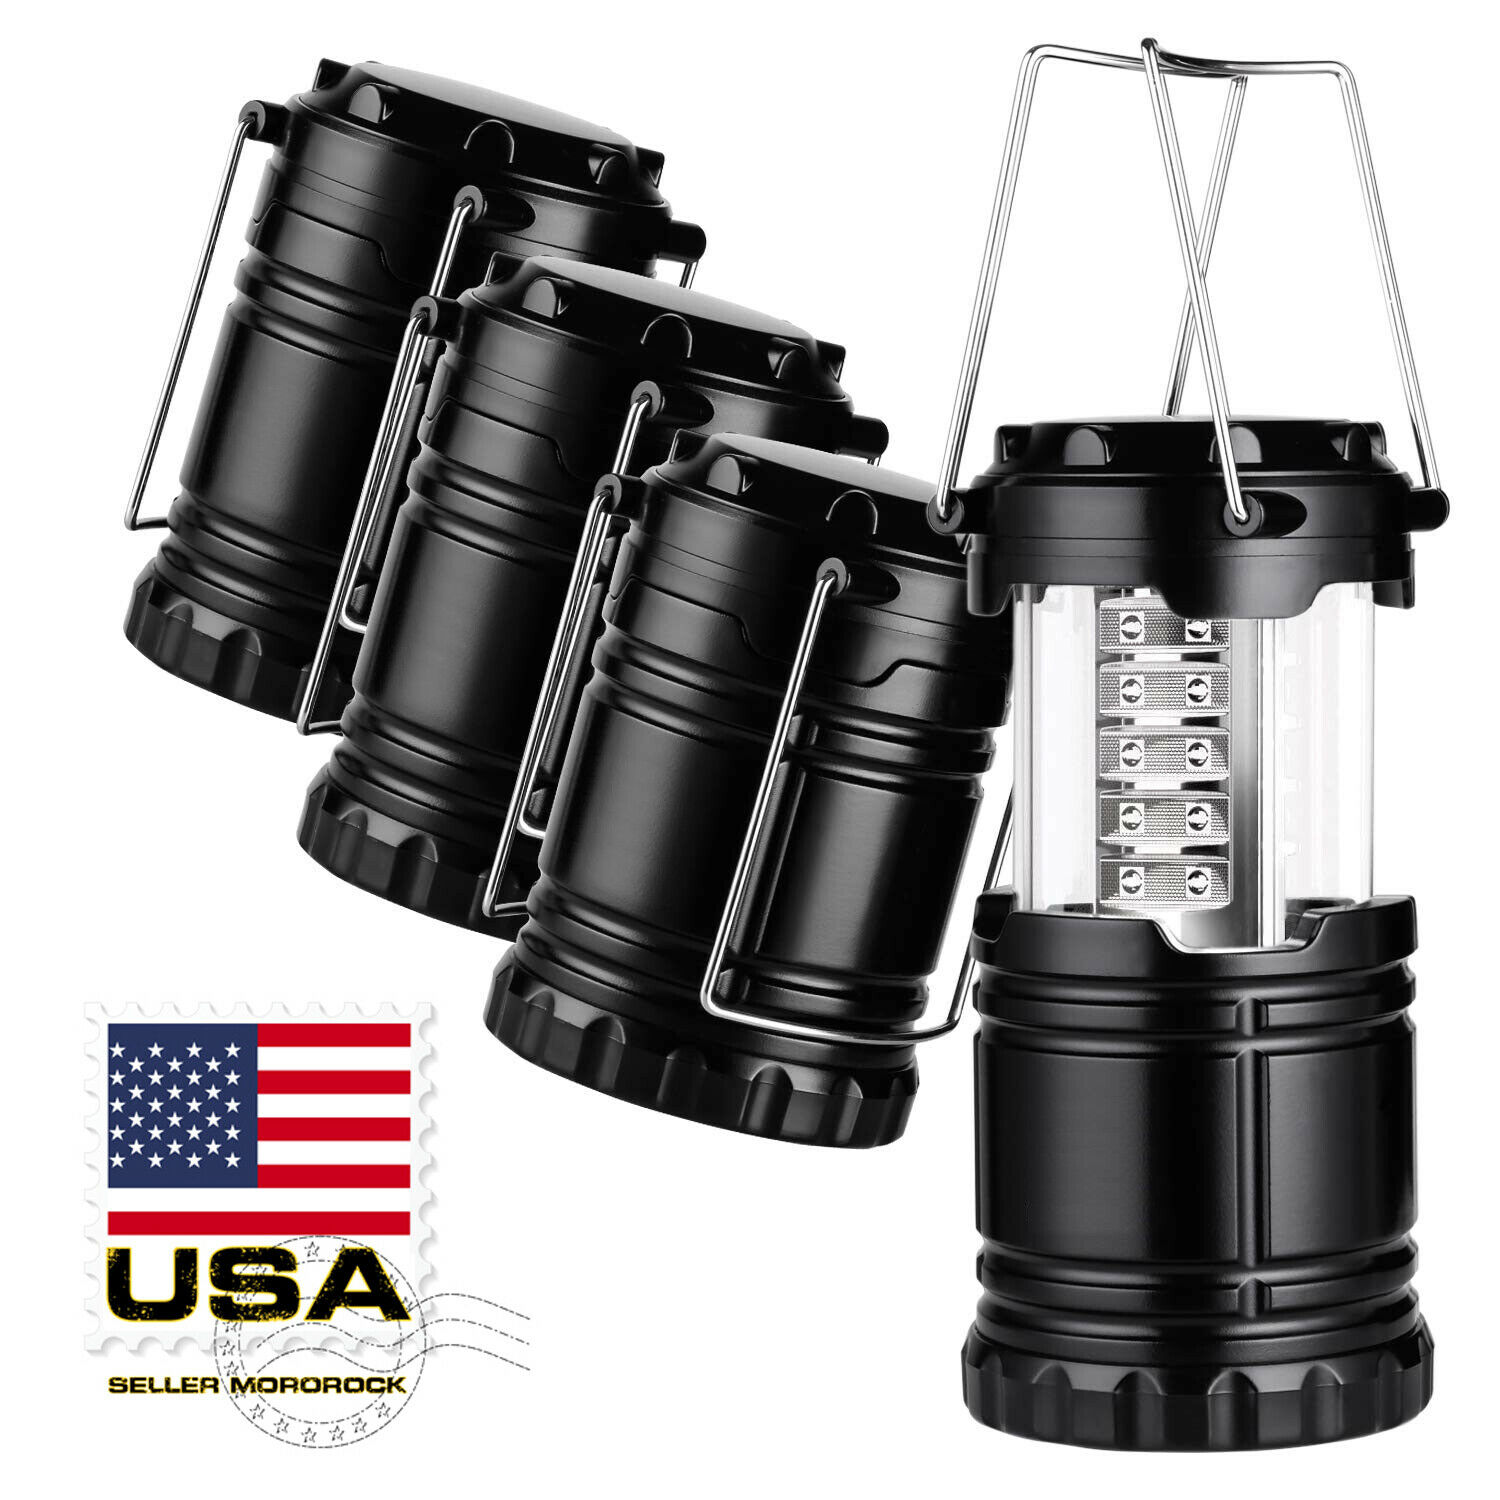 4X Collapsible LED Lanterns Tac Light Emergency Outdoor Hiki